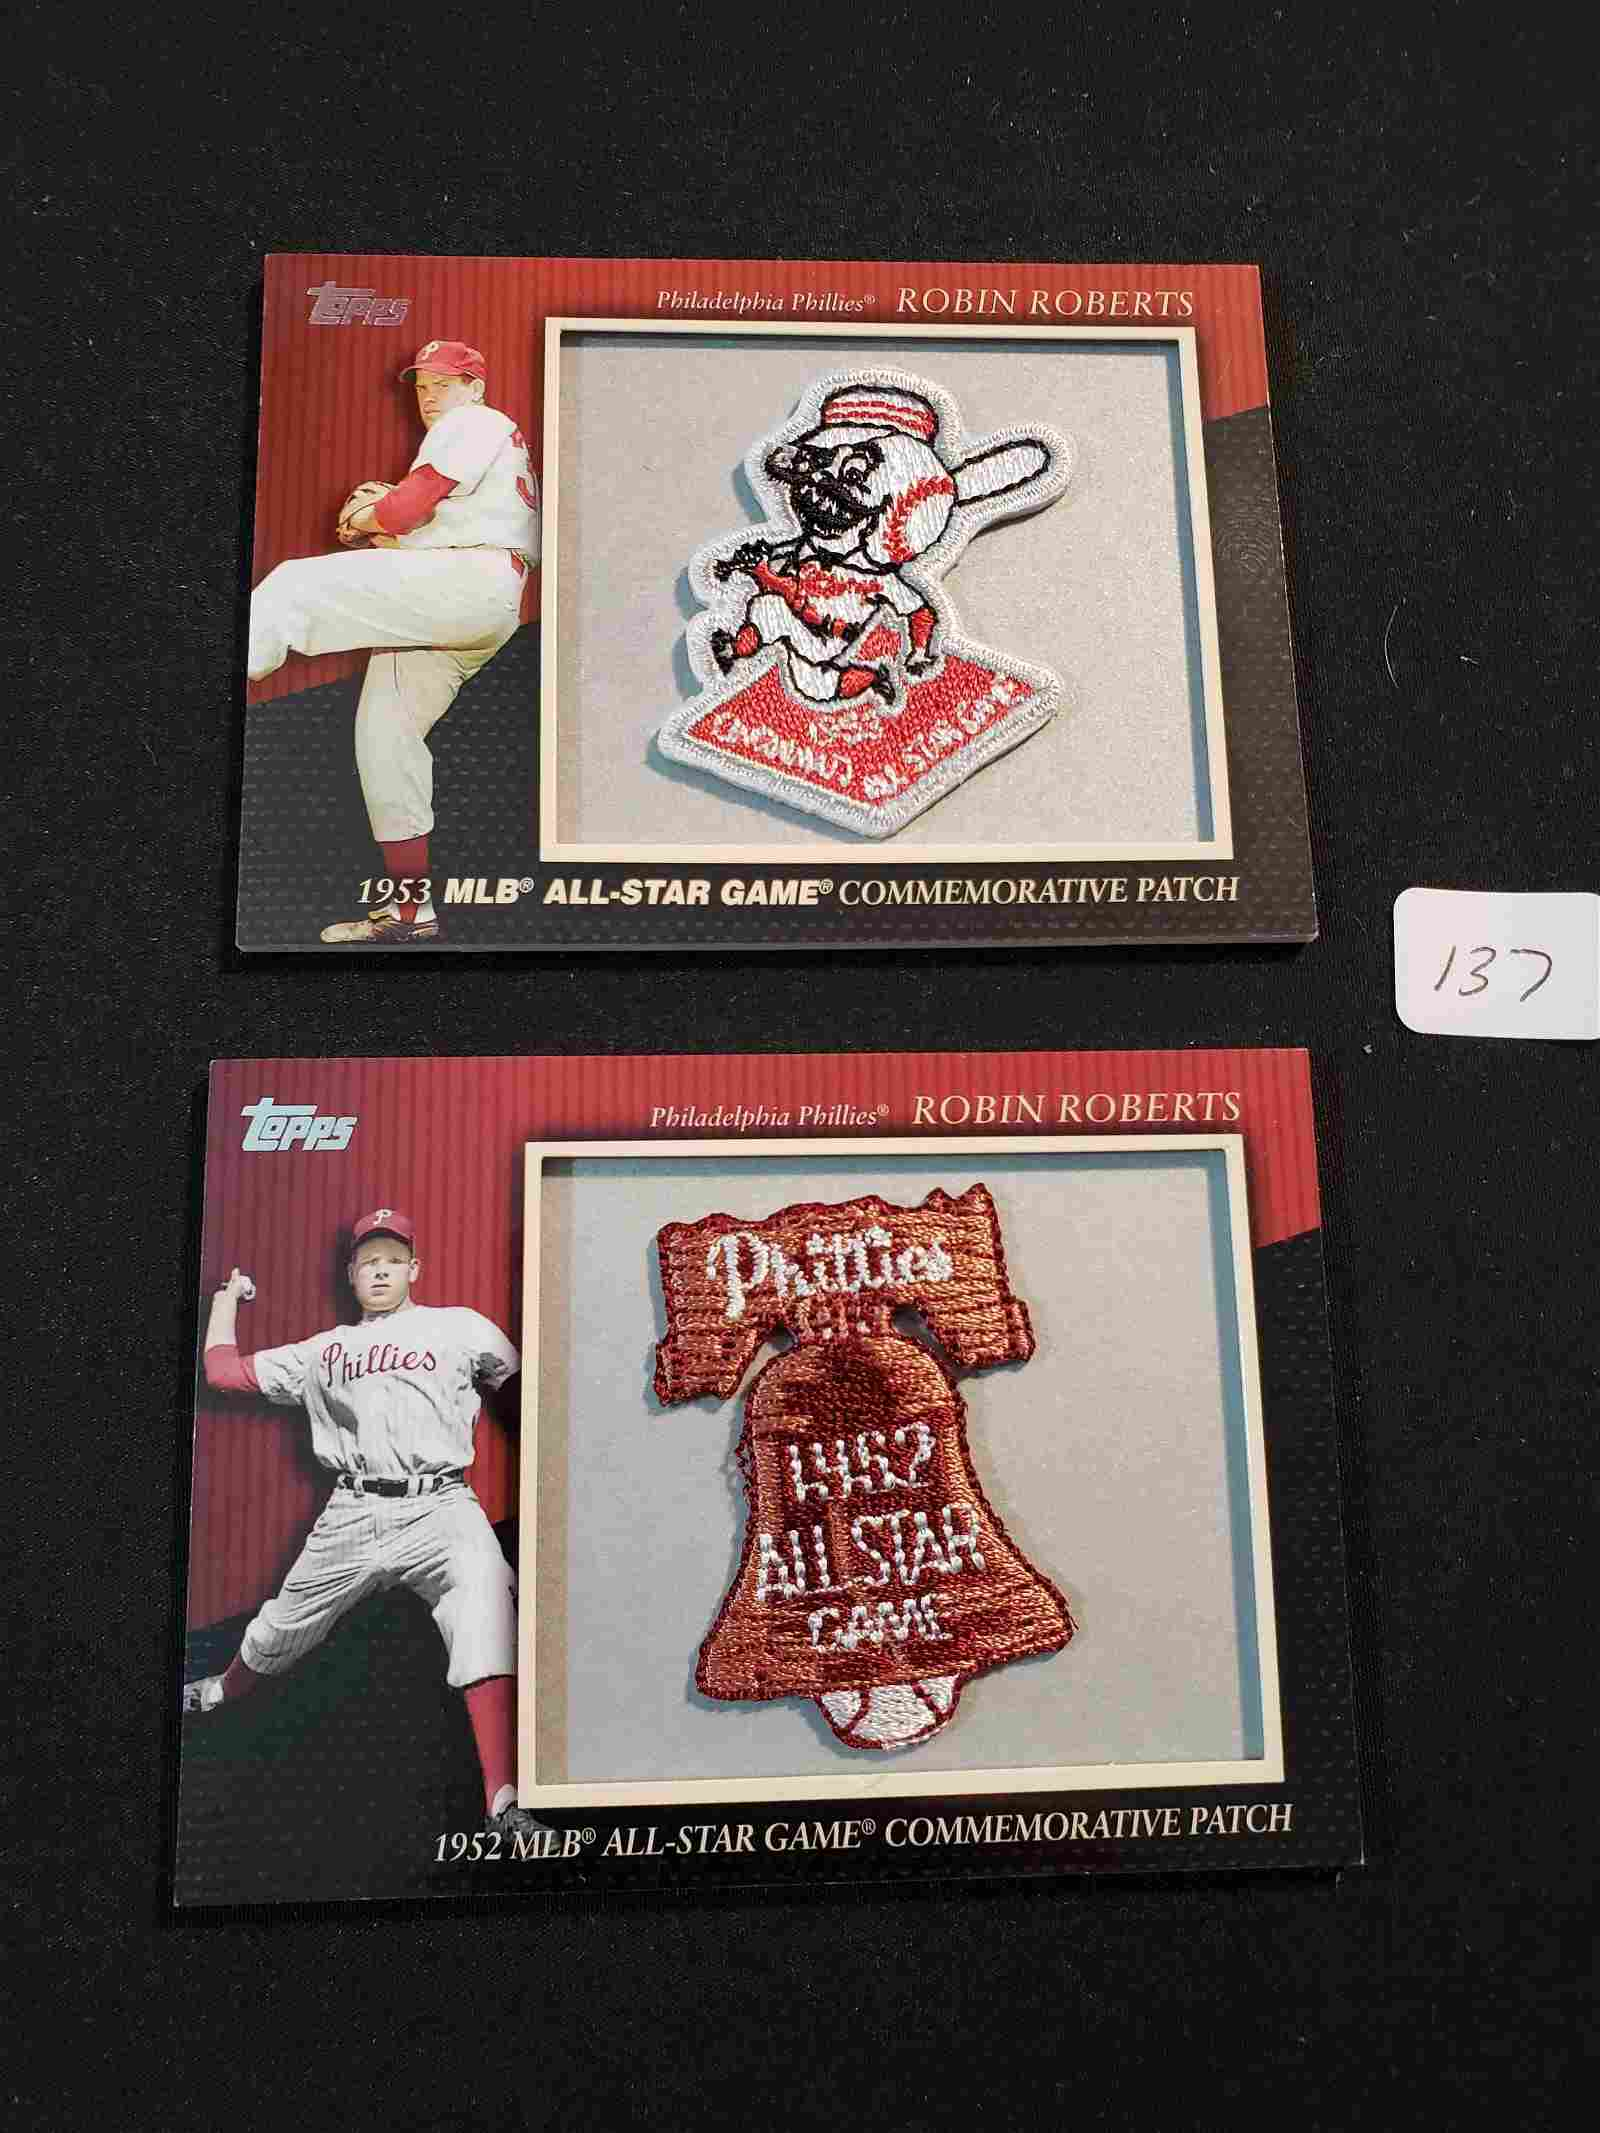 ROBIN ROBERTS 1952/1953 ALL-STAR GAME PATCH CARDS